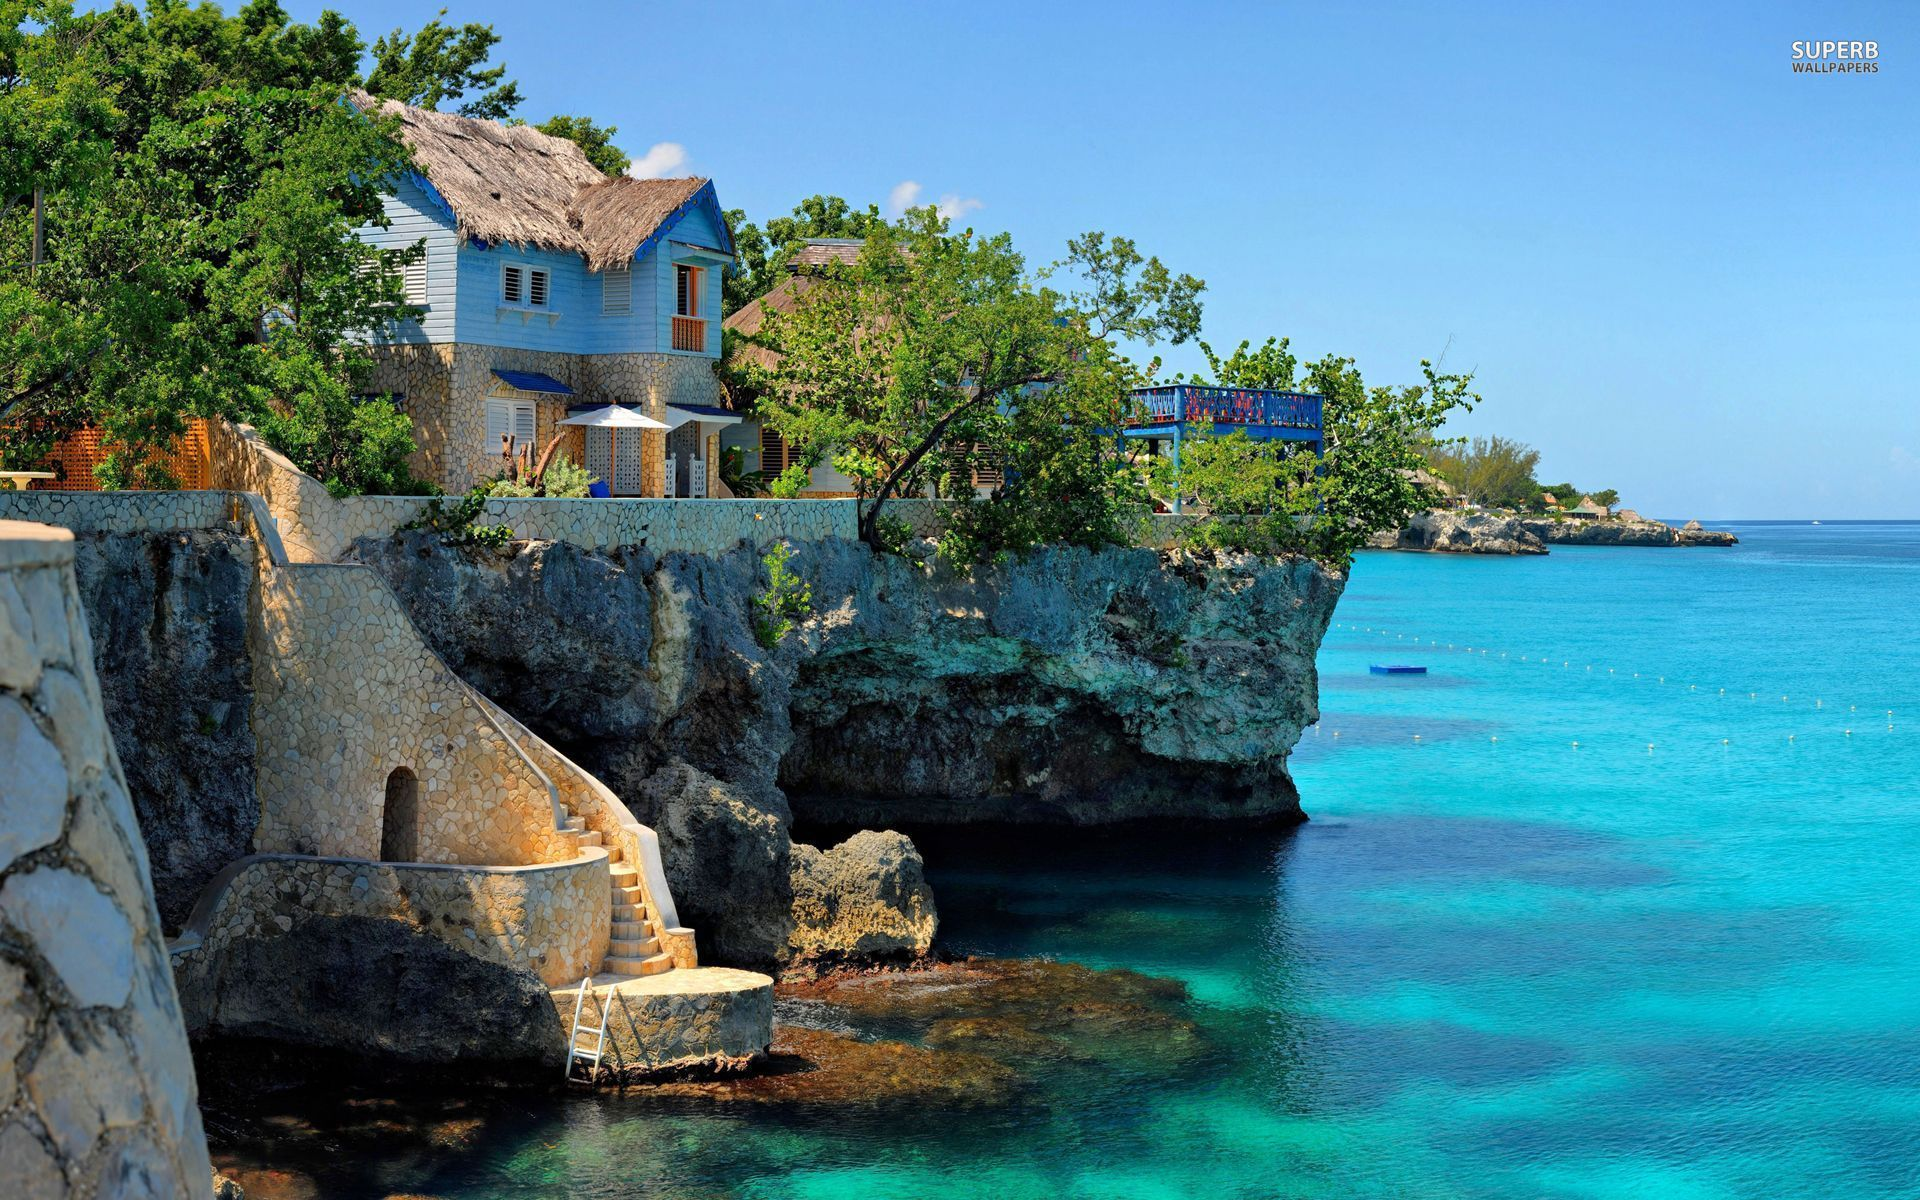 Coastal house in Negril, Jamaica wallpaper 1920x1200 jpg